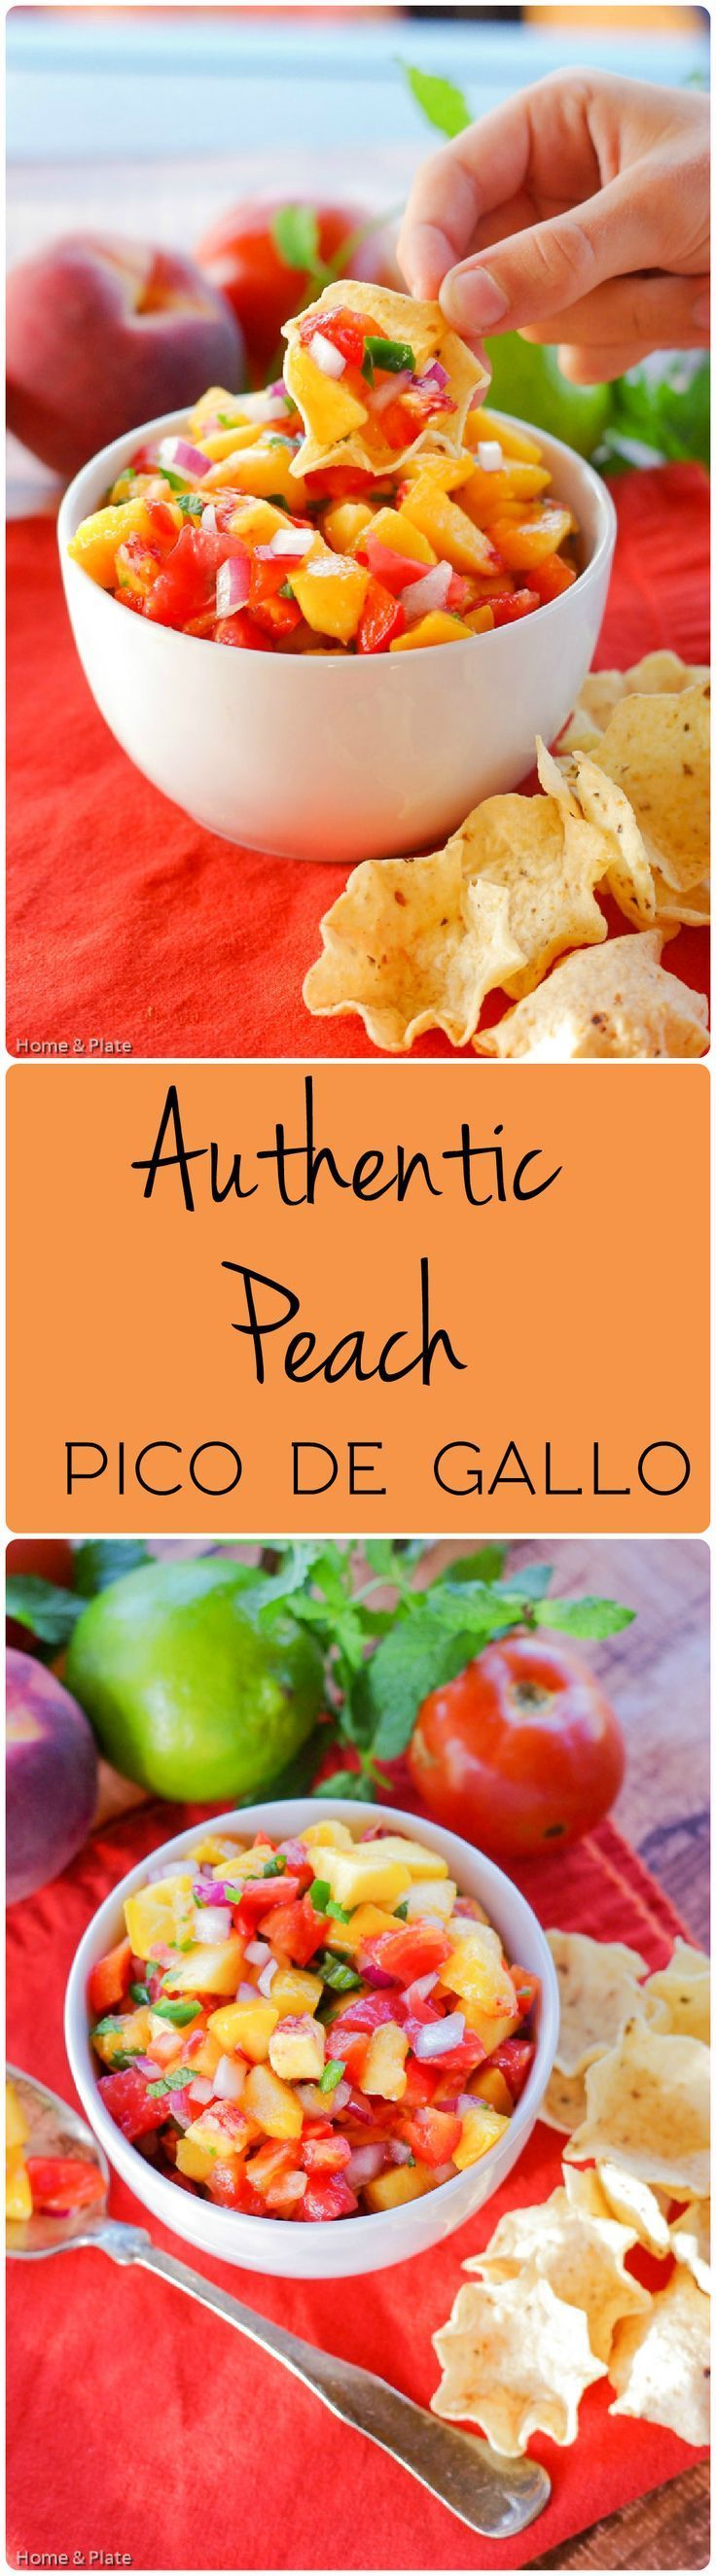 Authentic Peach Pico de Gallo   Home & Plate   www.homeandplate.com   Bring authentic Mexican flavors to your table this evening with this delicious Peach salsa.